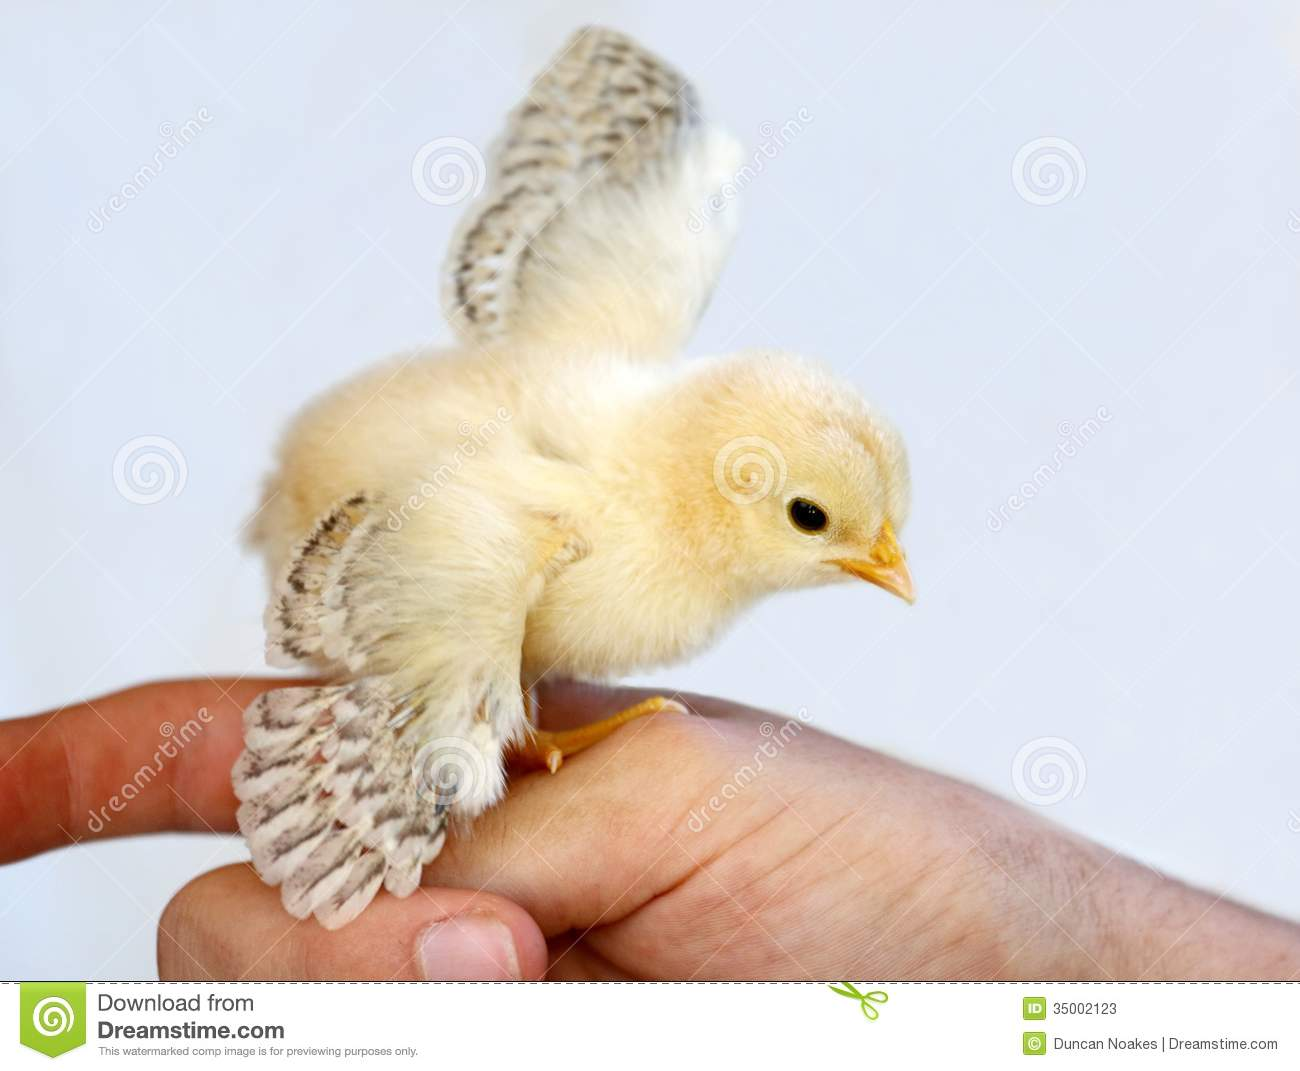 Tiny yellow chicken with it's wings outspread and perched on a finger.